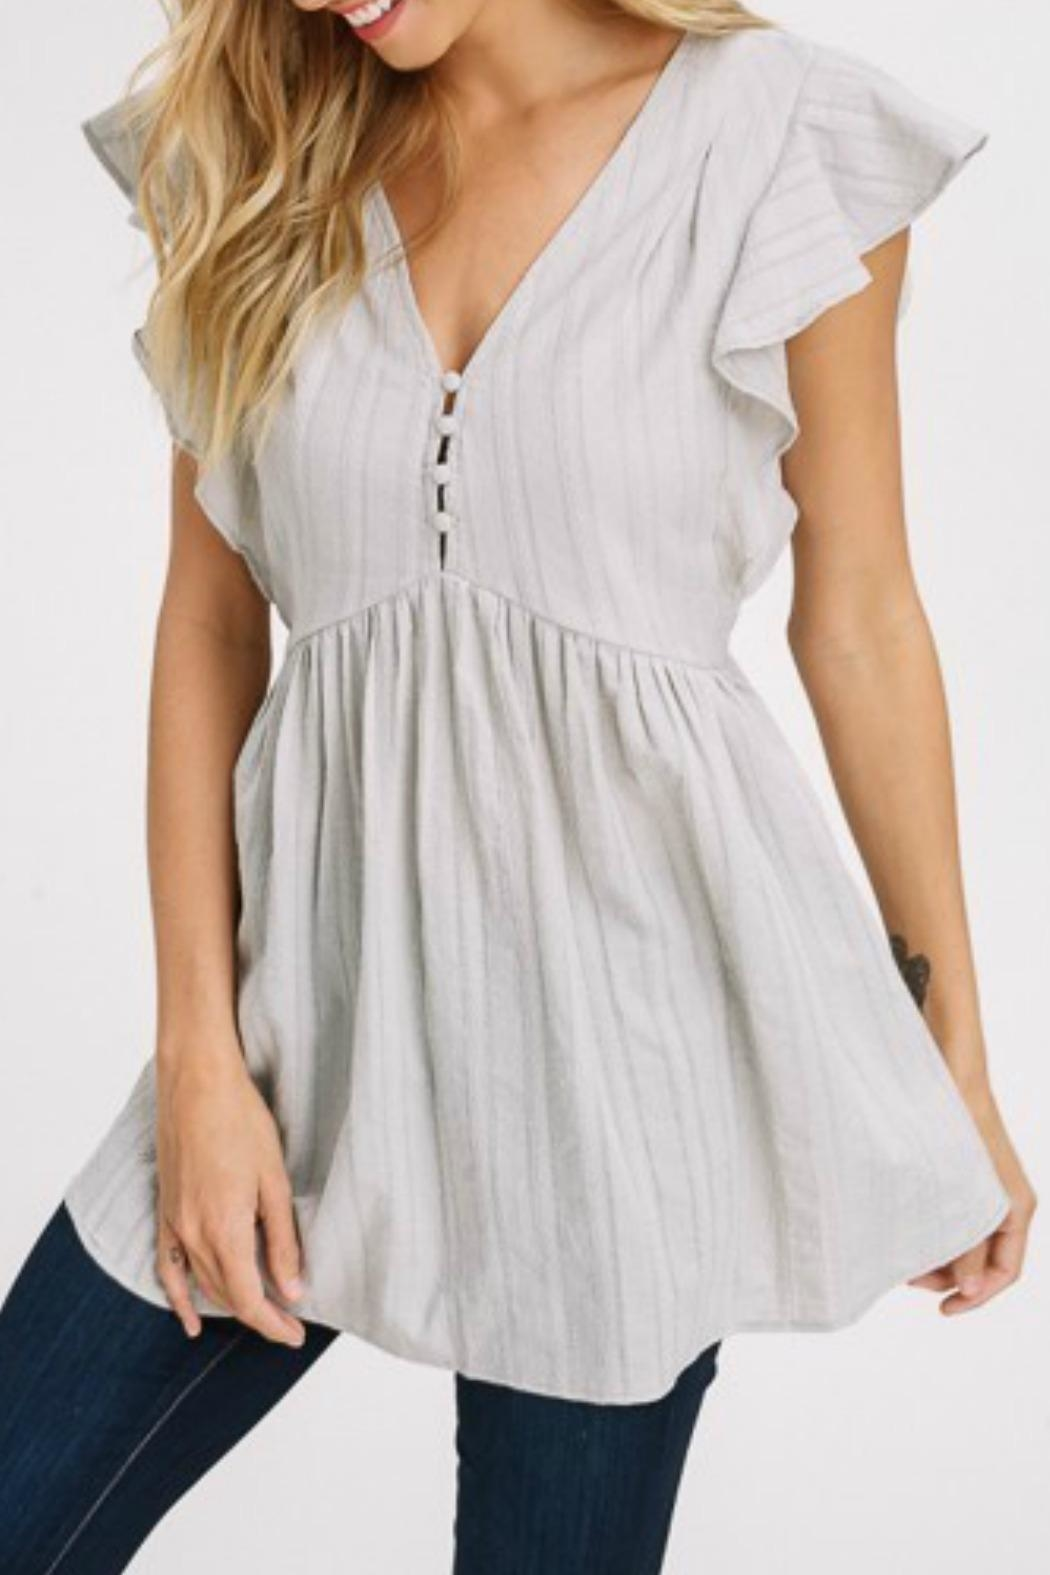 Izzie's Boutique Emily Sage Tunic - Front Full Image